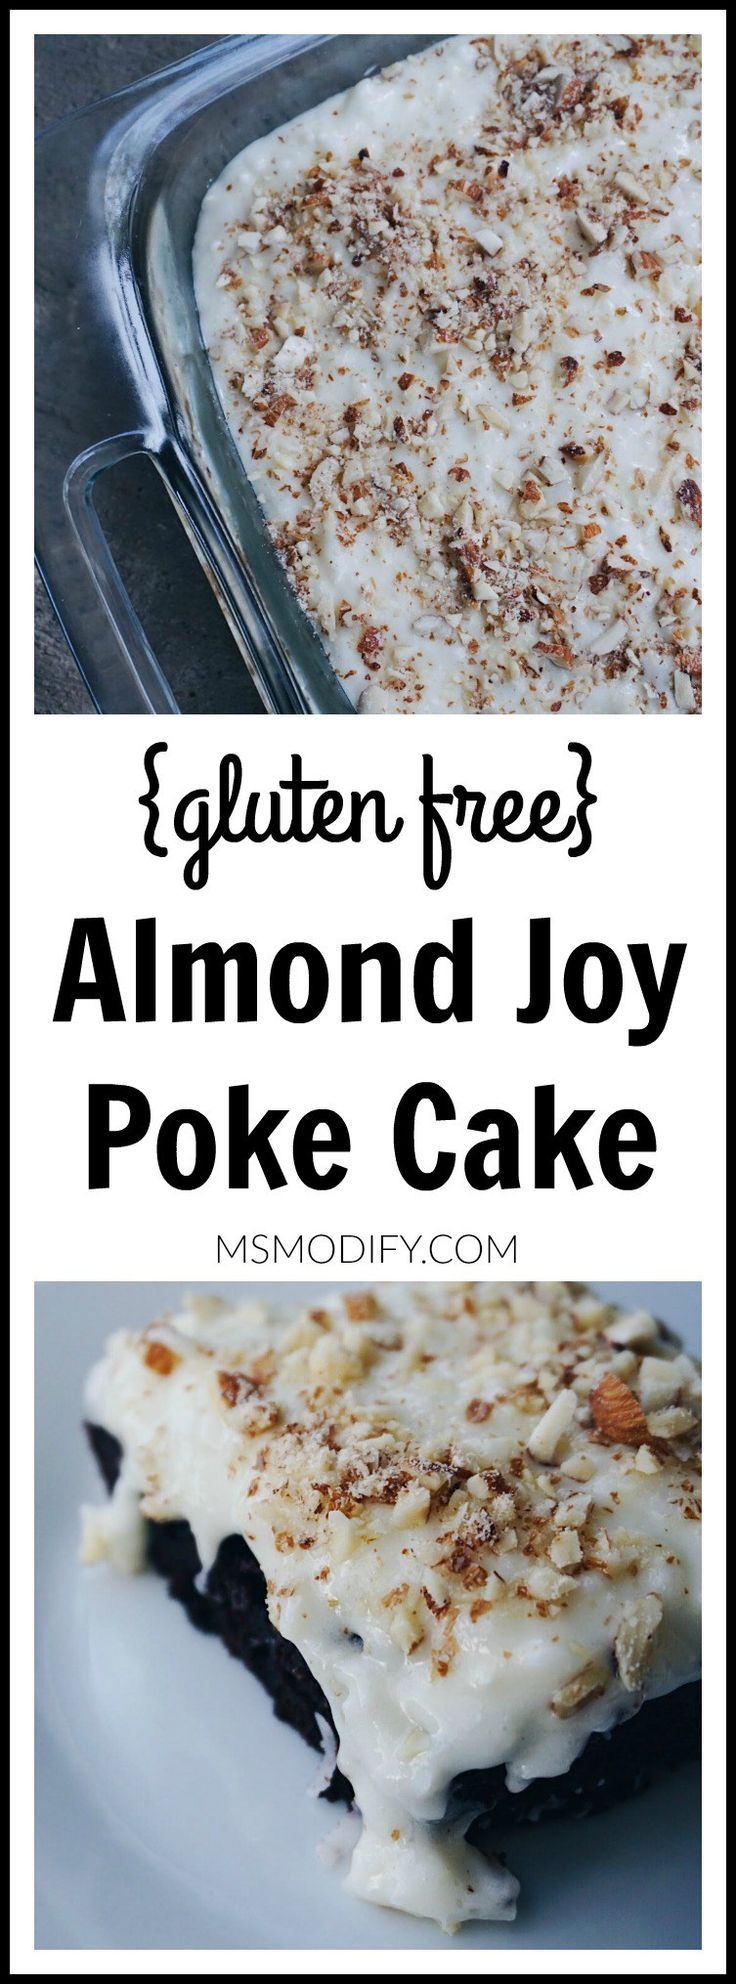 If Almond Joy candy bars are a favorite of yours, then this cake is meant for you! Chocolate, coconut and almonds all wrapped into one gluten free cake!